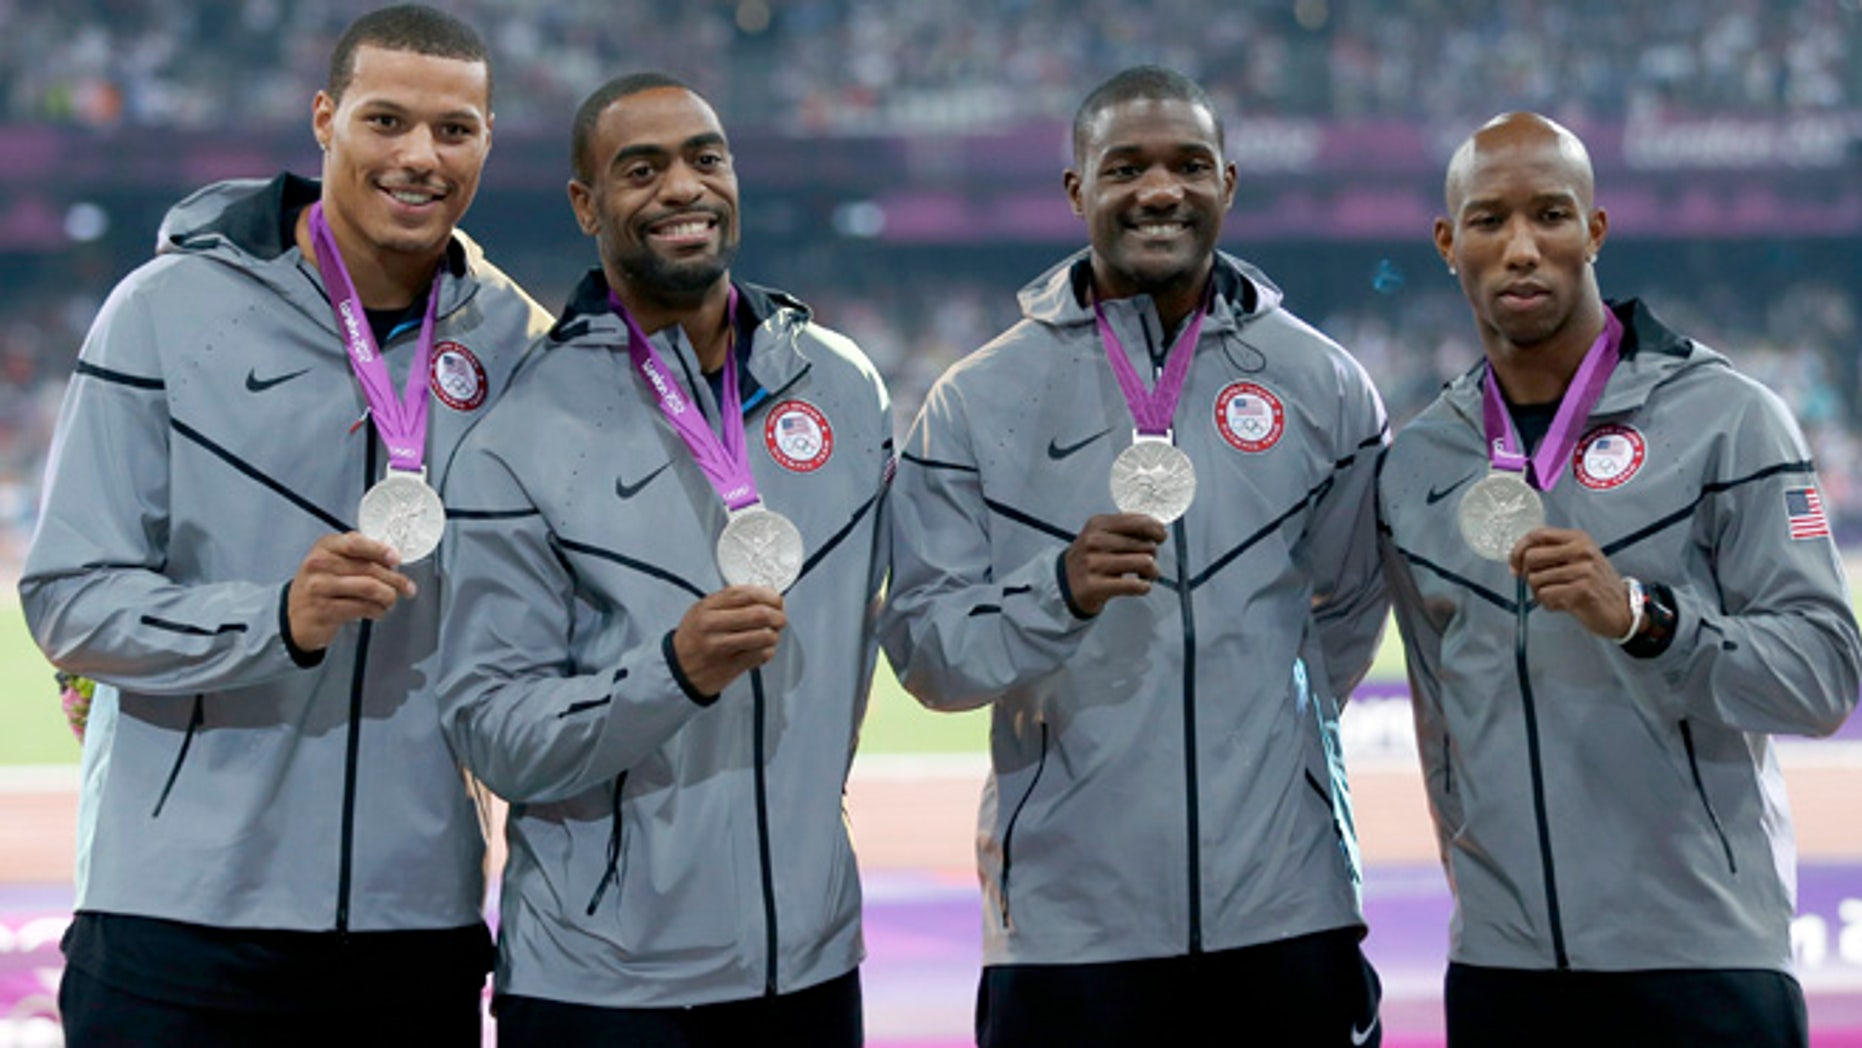 Aug. 11, 2012: Silver medalists (R-L) Trell Kimmons, Justin Gatlin, Tyson Gay and Ryan Bailey of the U.S. pose after receiving their medals for the men's 4x100m relay during the London 2012 Olympic Games at the Olympic Stadium.